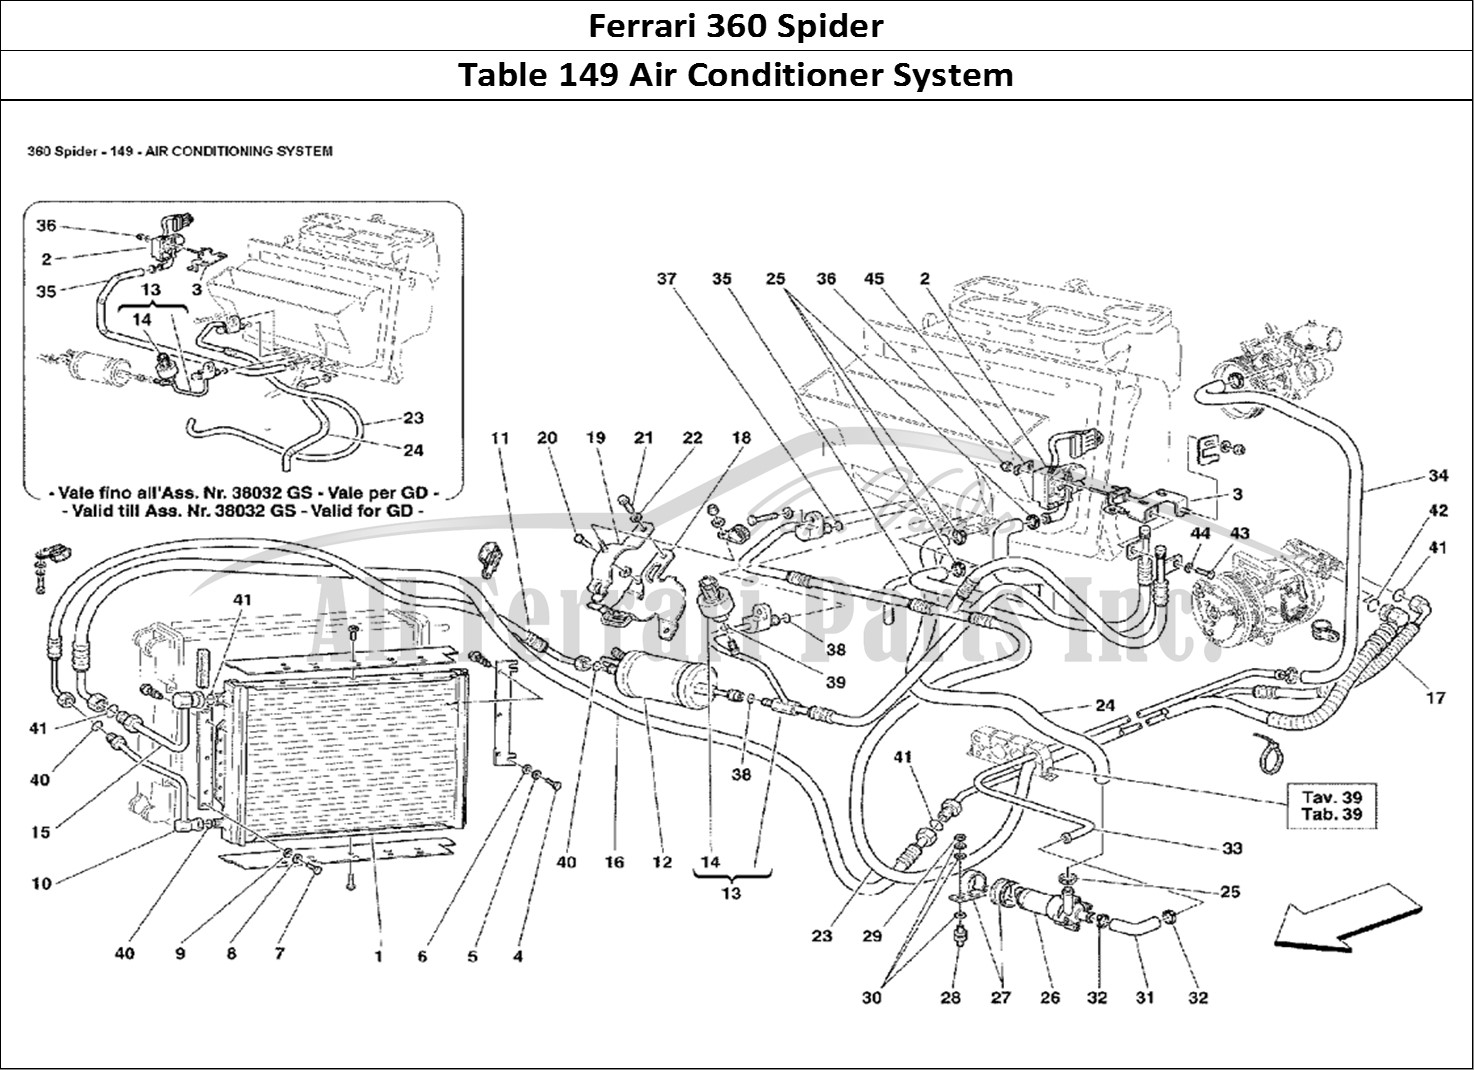 Buy original Ferrari 360 Spider 149 Air Conditioner System